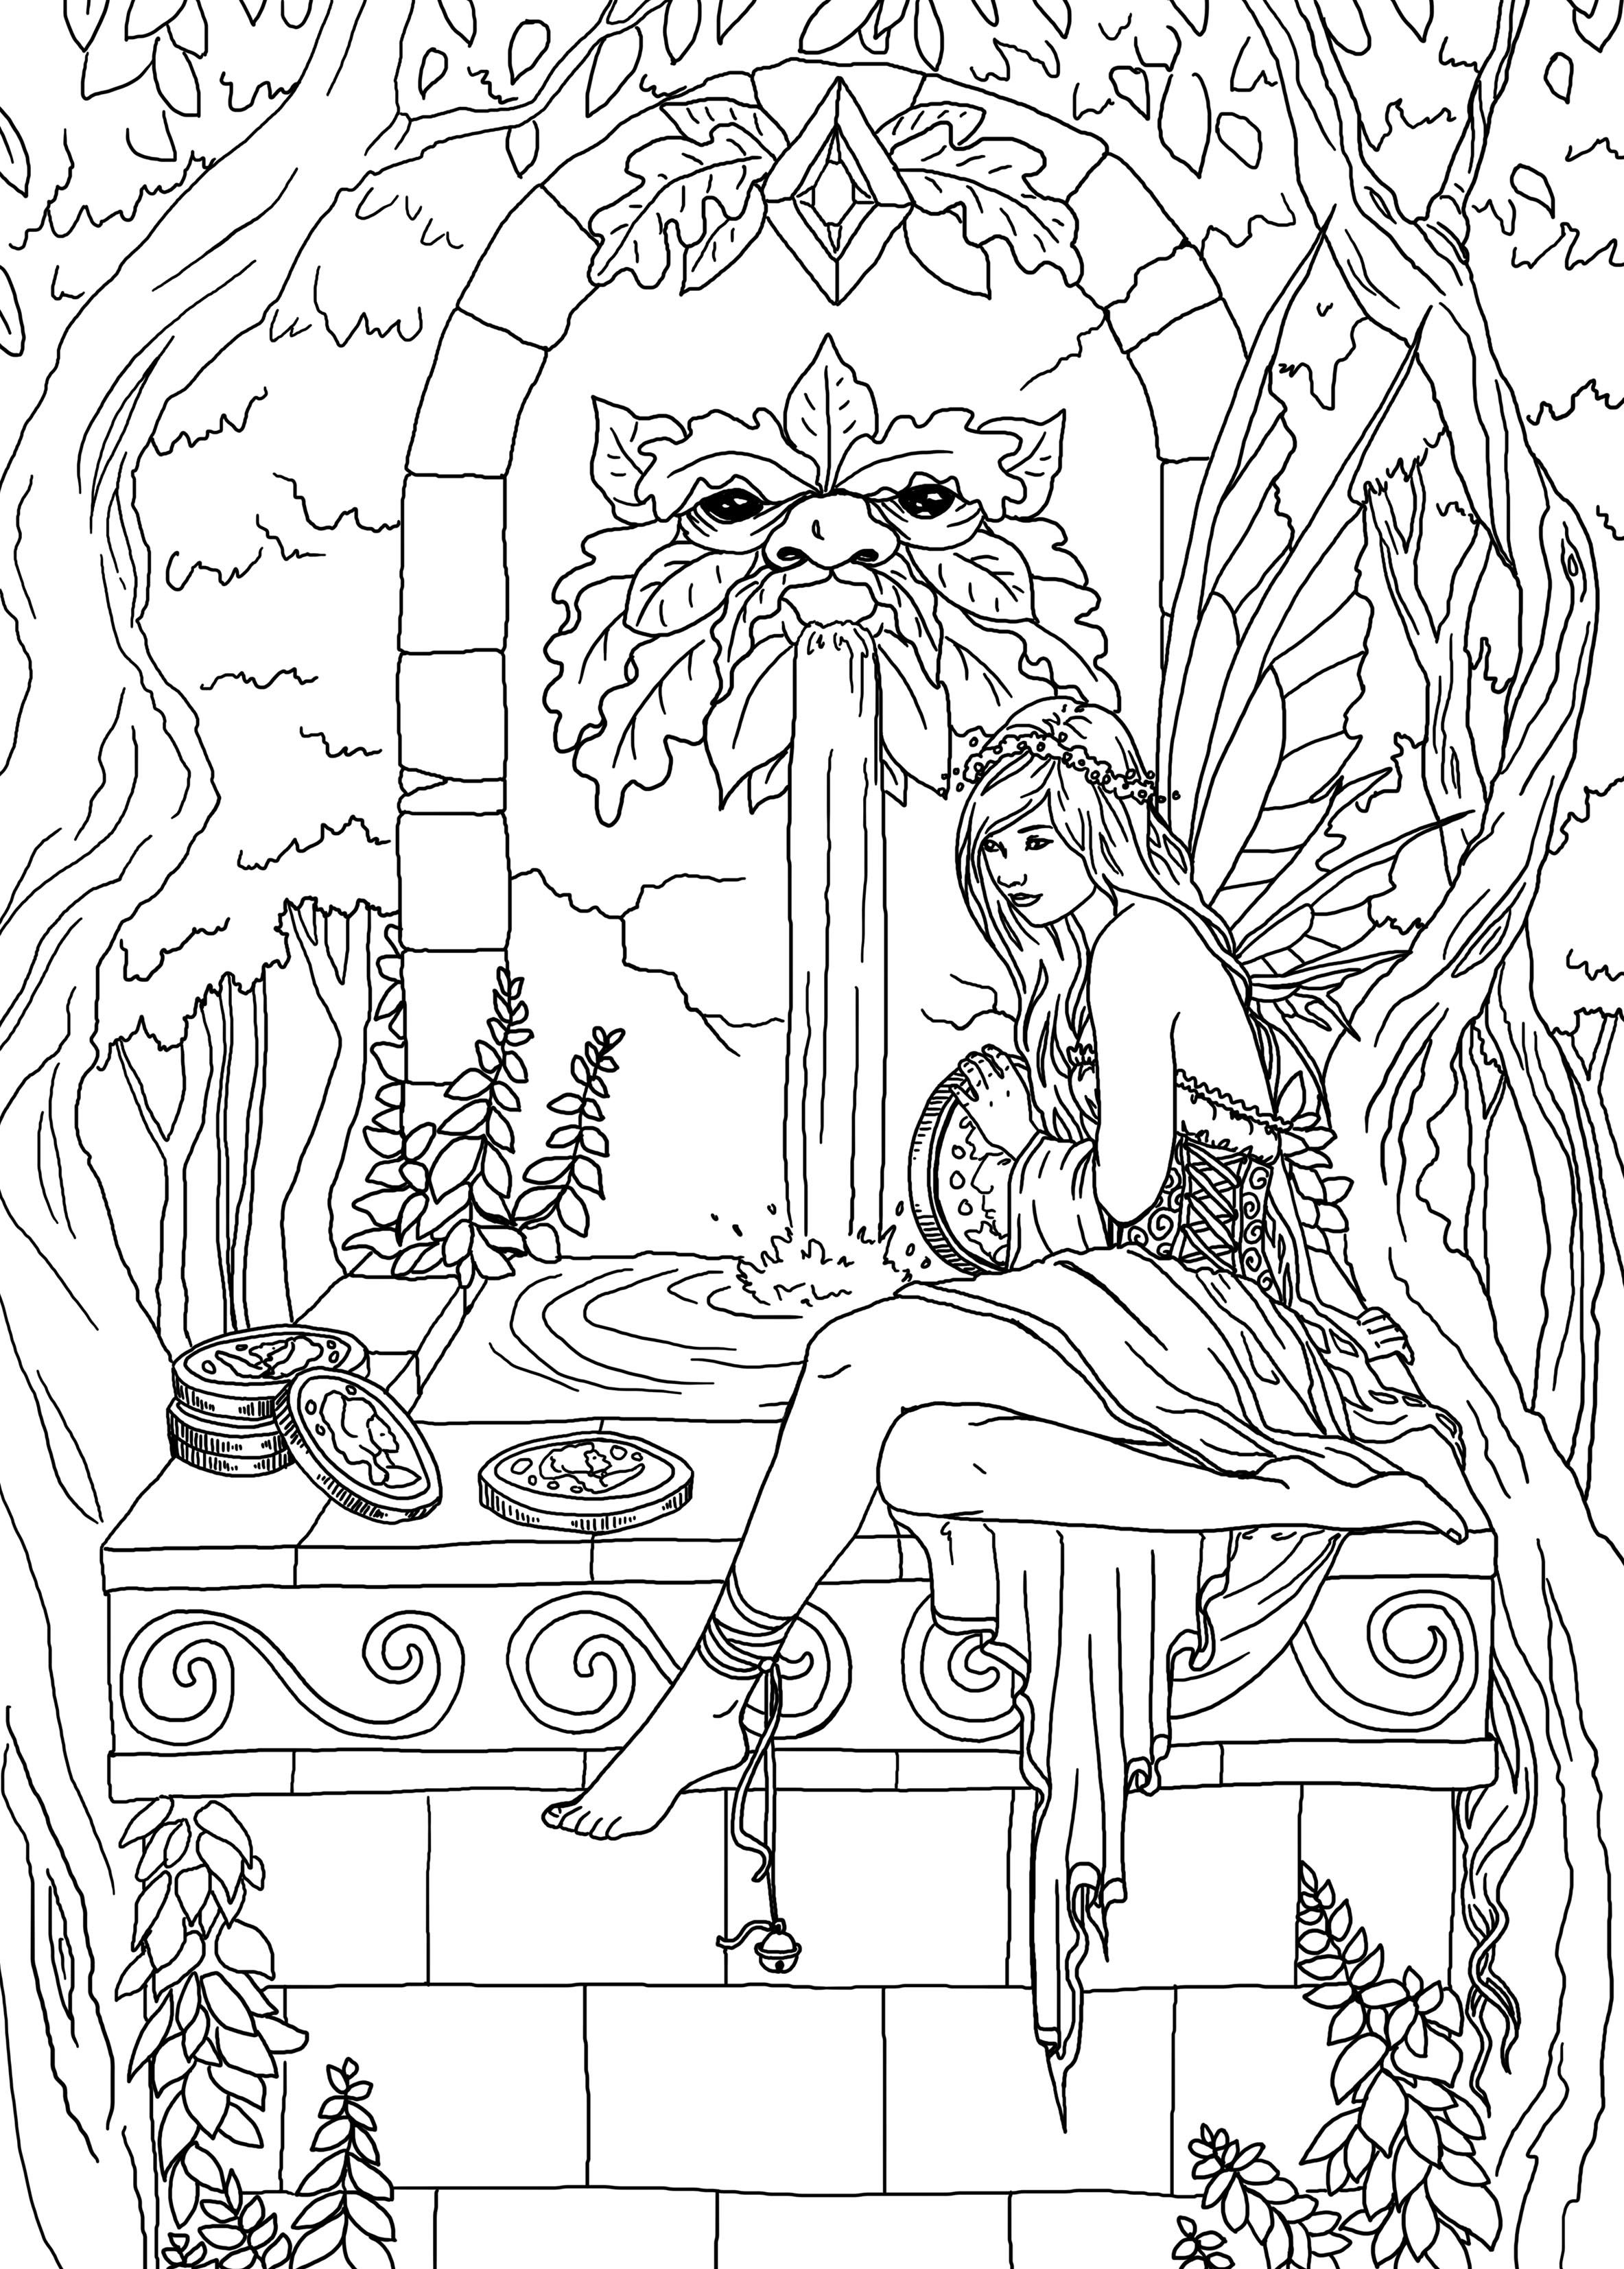 Selina Fenech coloring Fairy Wishing Well * Fairy Myth Mythical ...